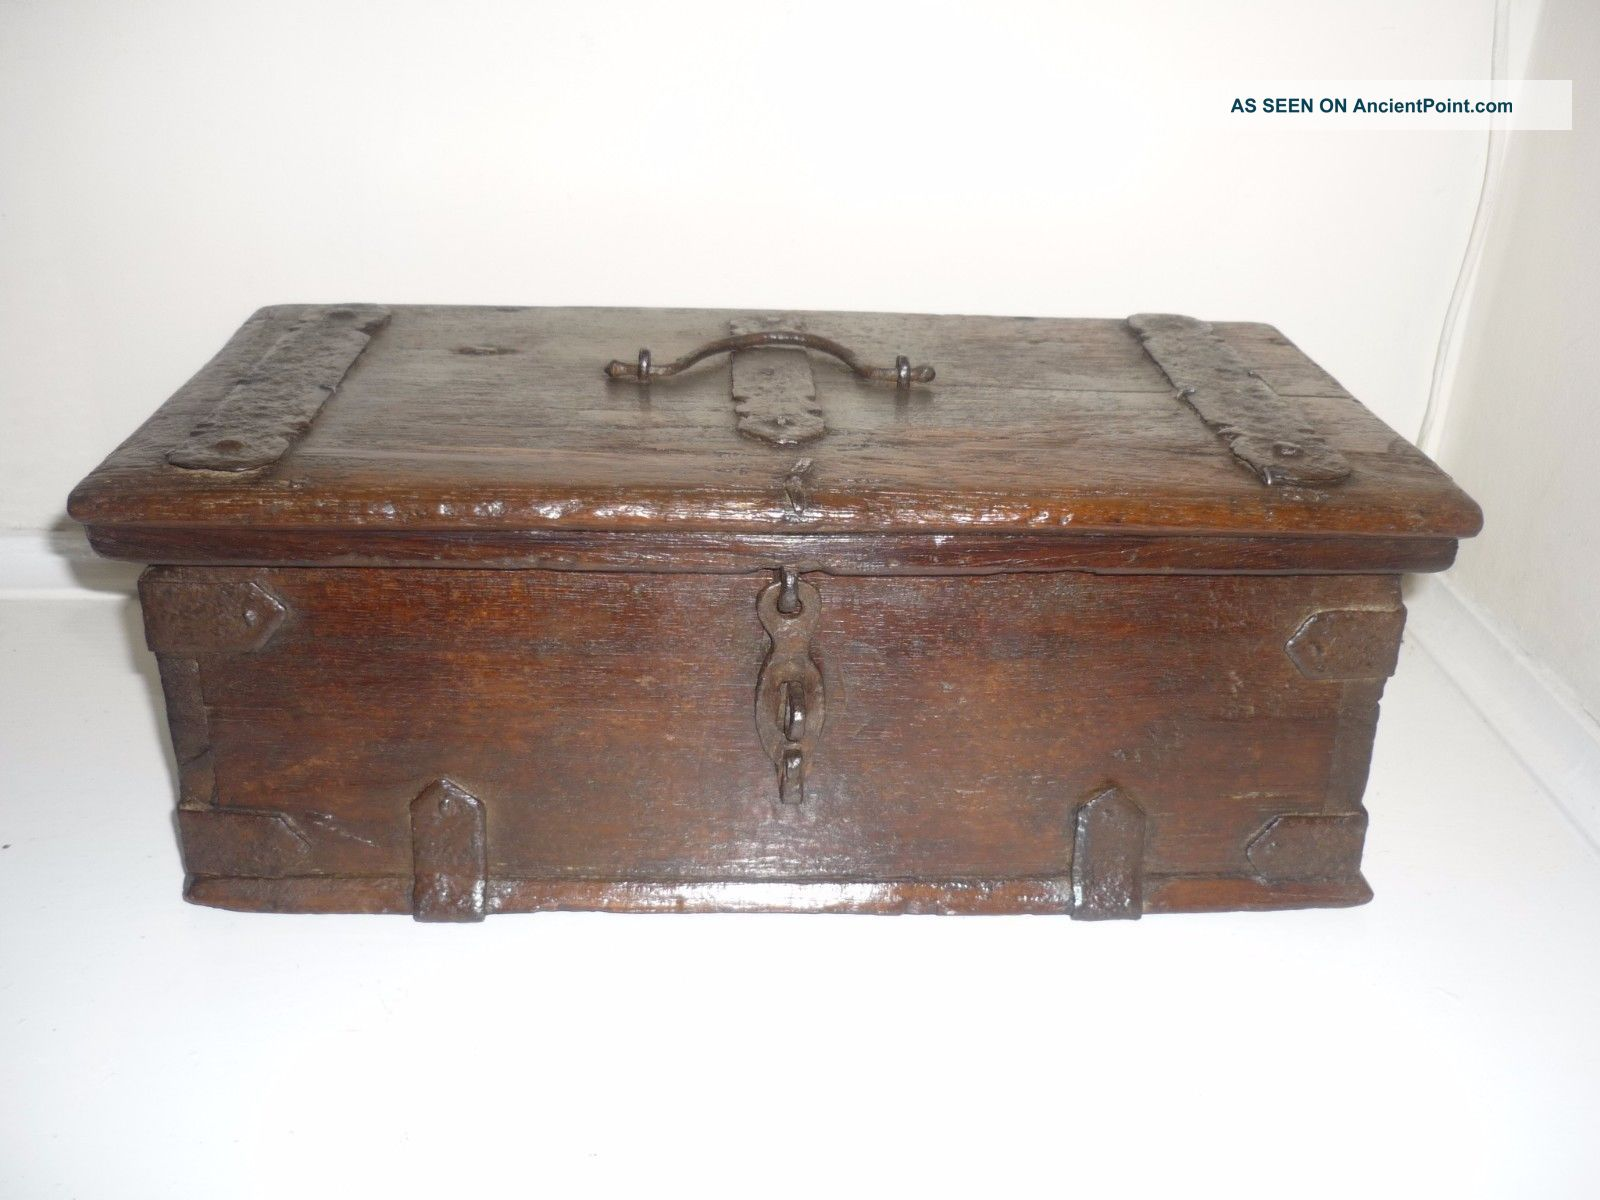 Rare 17th Century Spanish Iron Bound Oak Box C1650 Pre-1800 photo